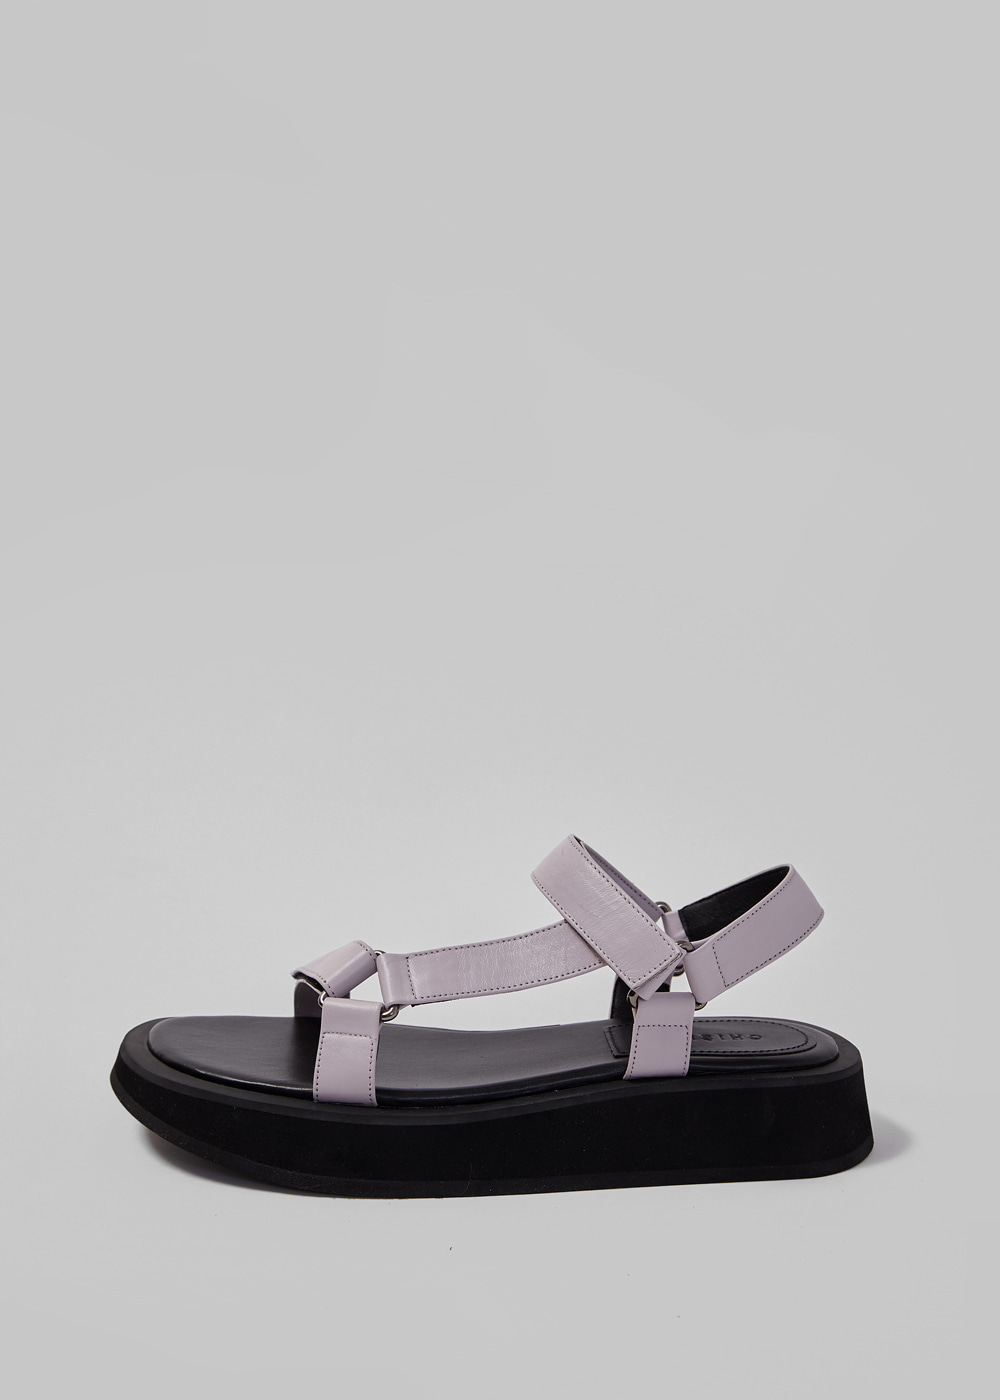 GO-OUT SANDAL [C1S06 LV]